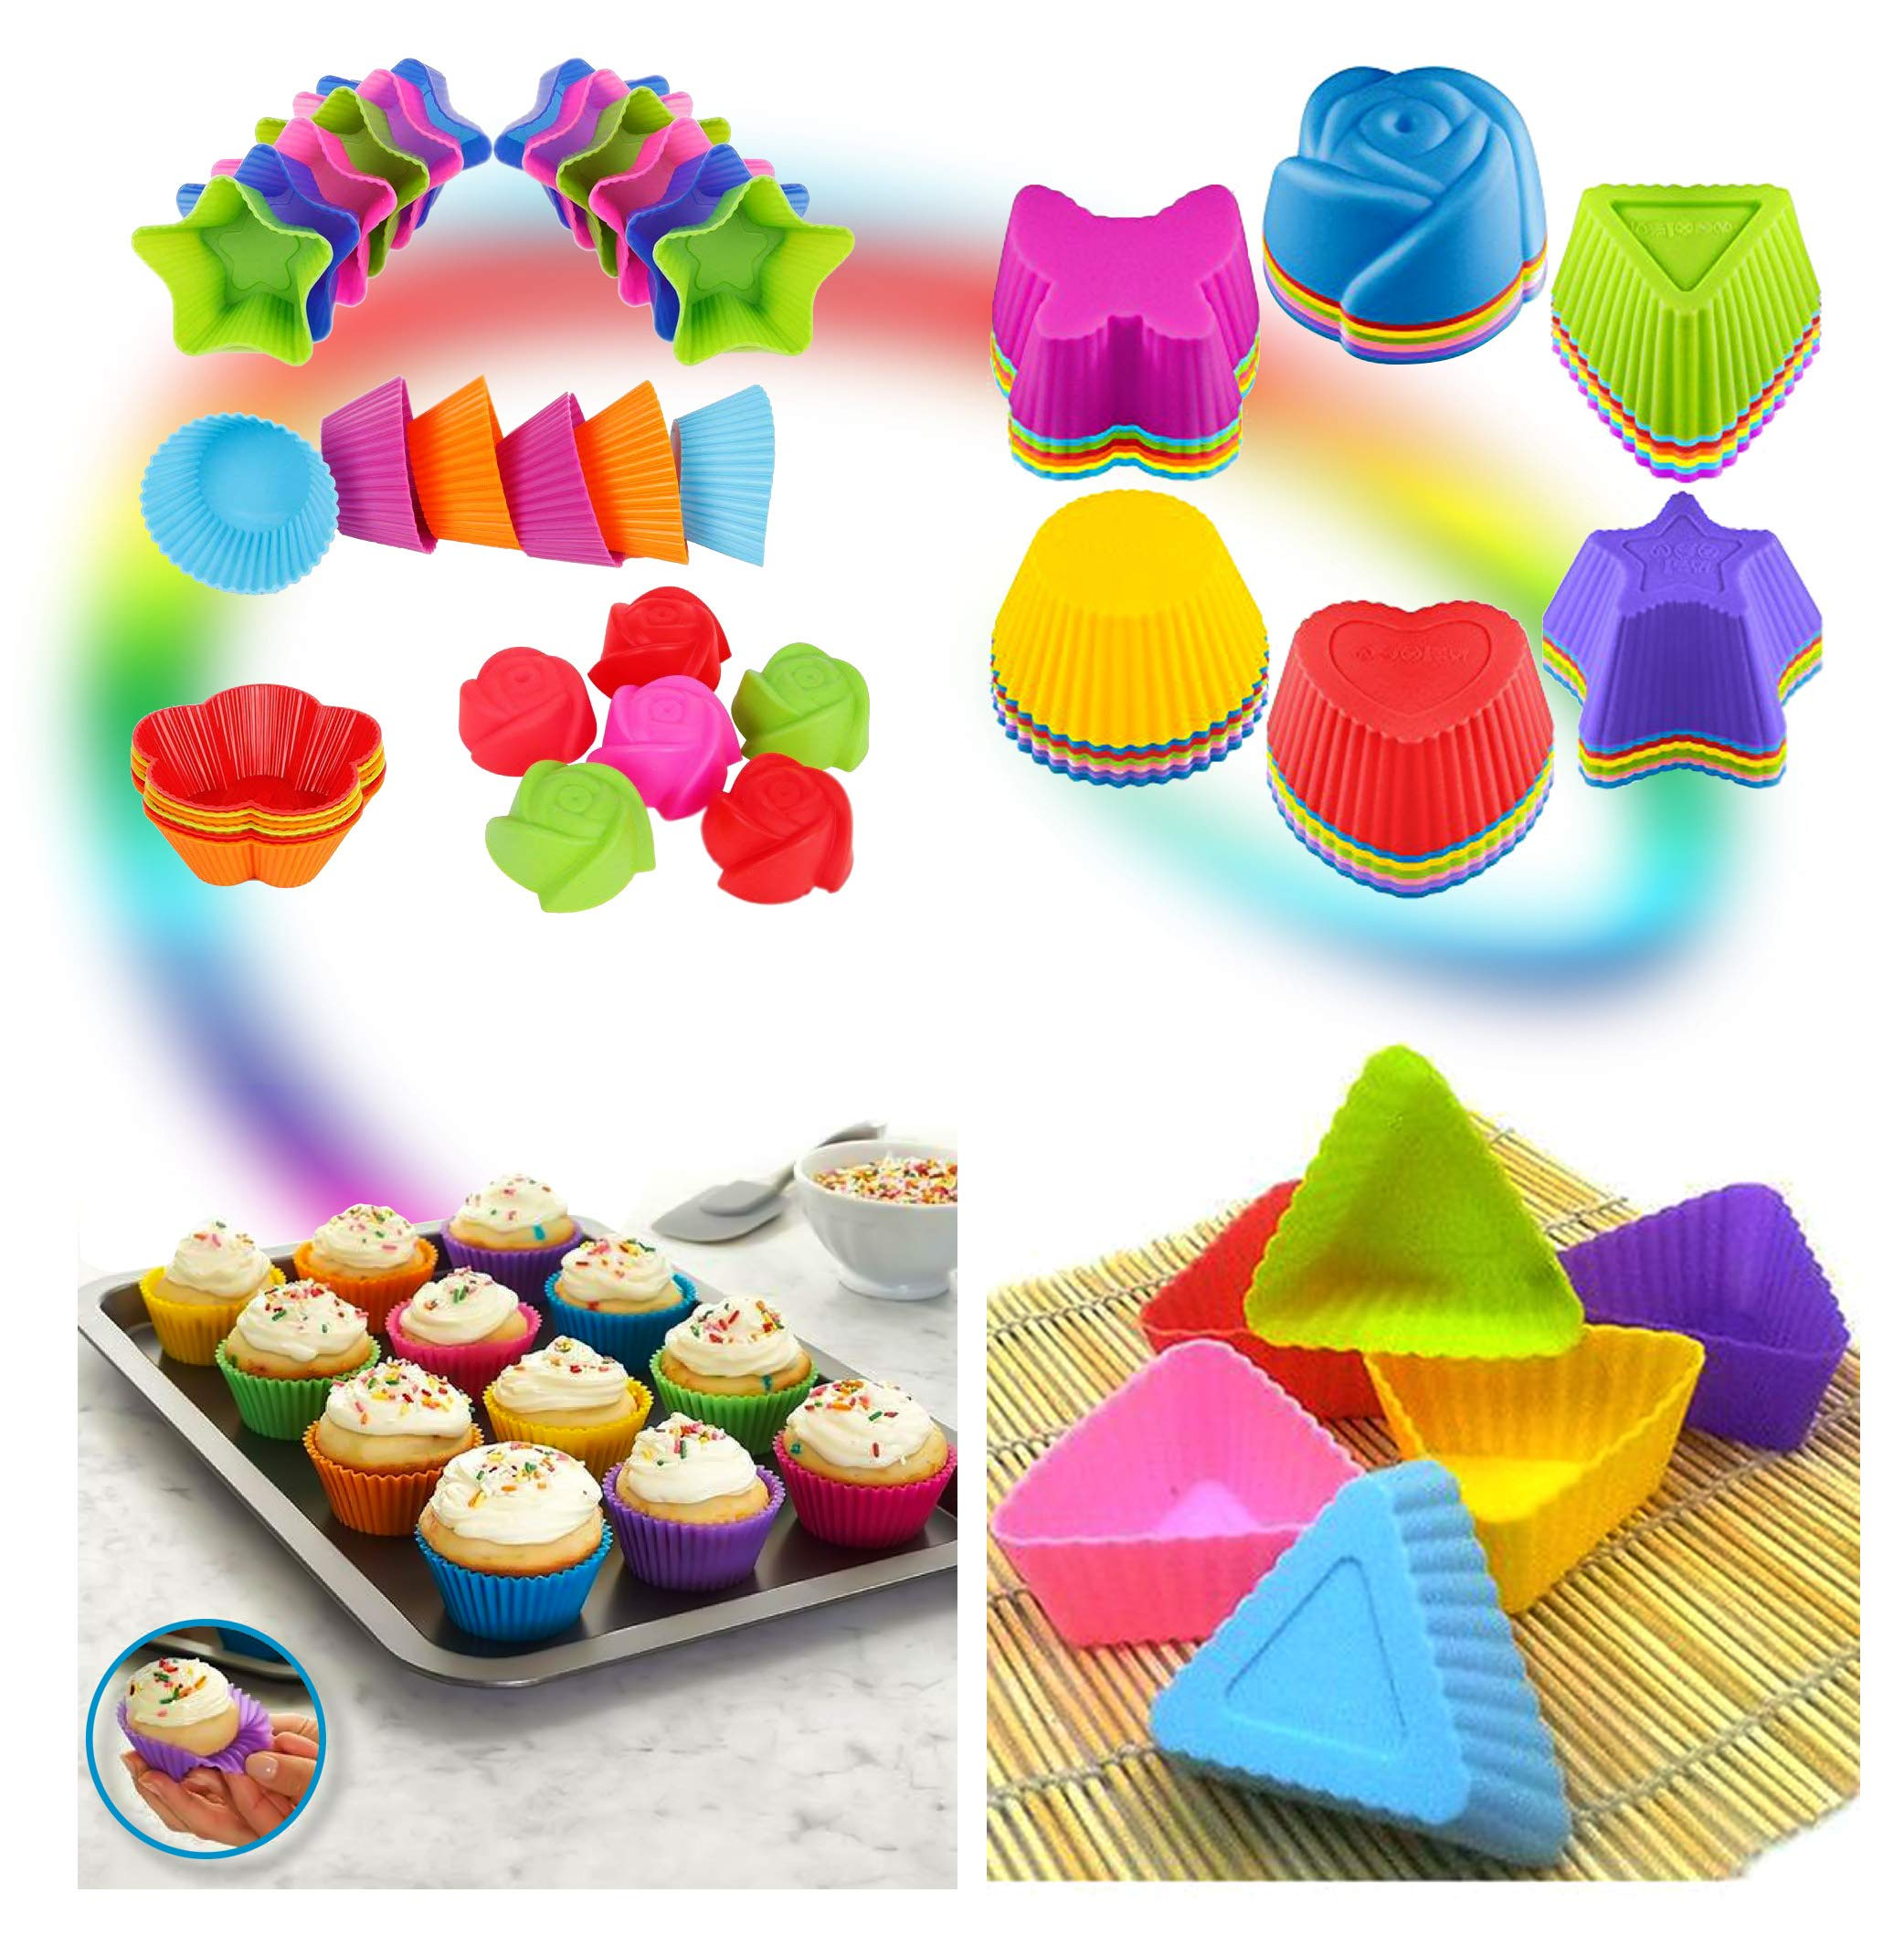 Cupcake Baking Cup Molds Bundle Easy Clean Pastry Liners 48 Nonstick Reusable Silicone Muffin Molds with Icing Pen Cupcake & Cake Decorating Pen Set by Kitchen Krush (Image #3)